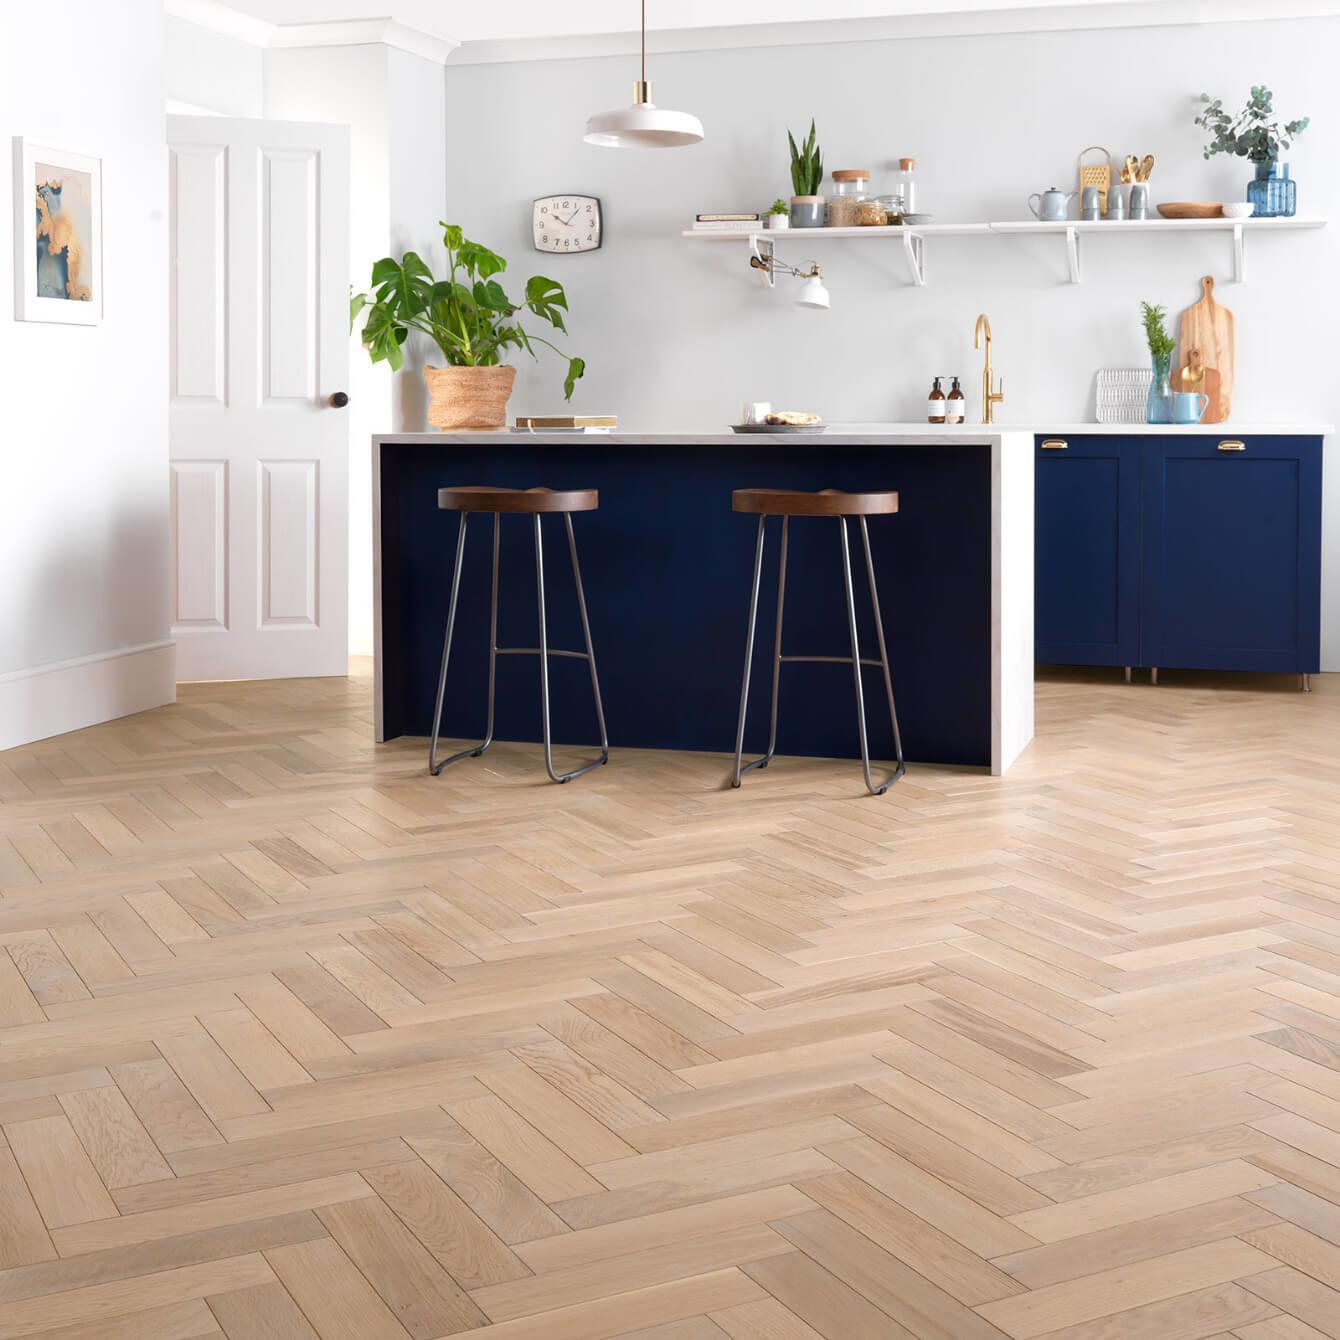 Woodpecker Goodrich Herringbone Ecru Oak Brushed & Matt Lacquered Engineered Wood Flooring 32-GEO-001